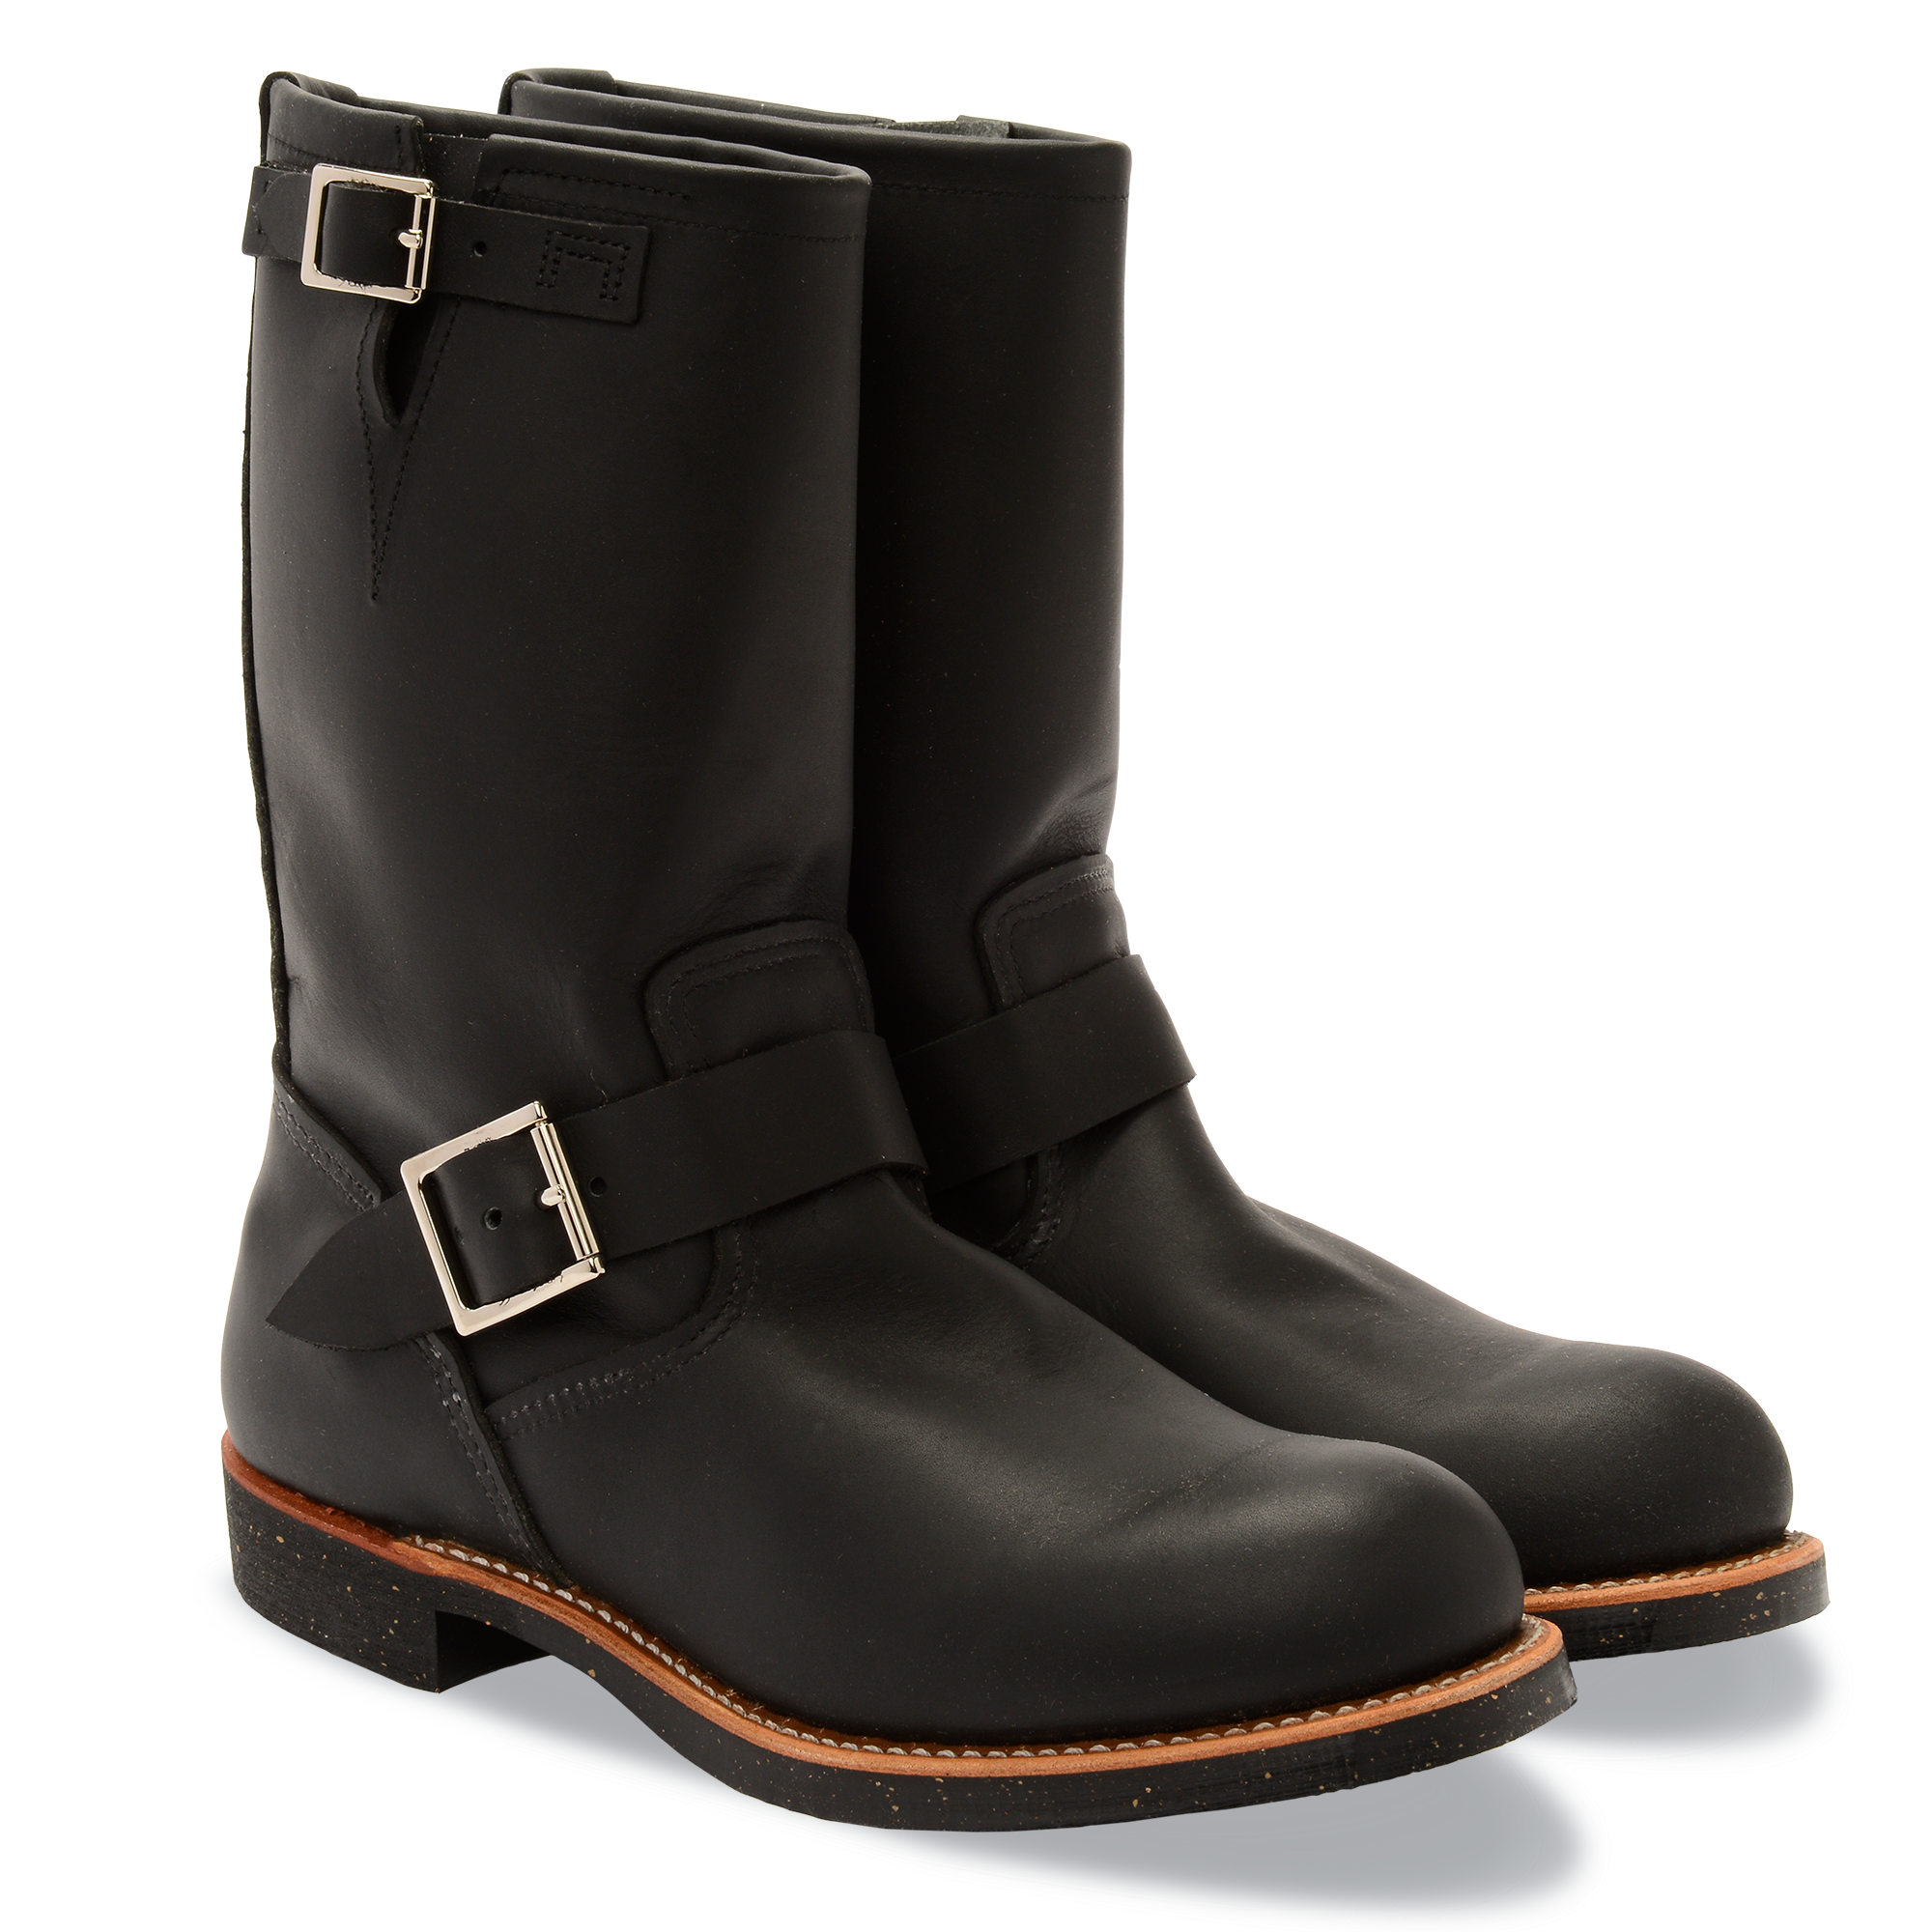 Red wing engineer boot 2990 black